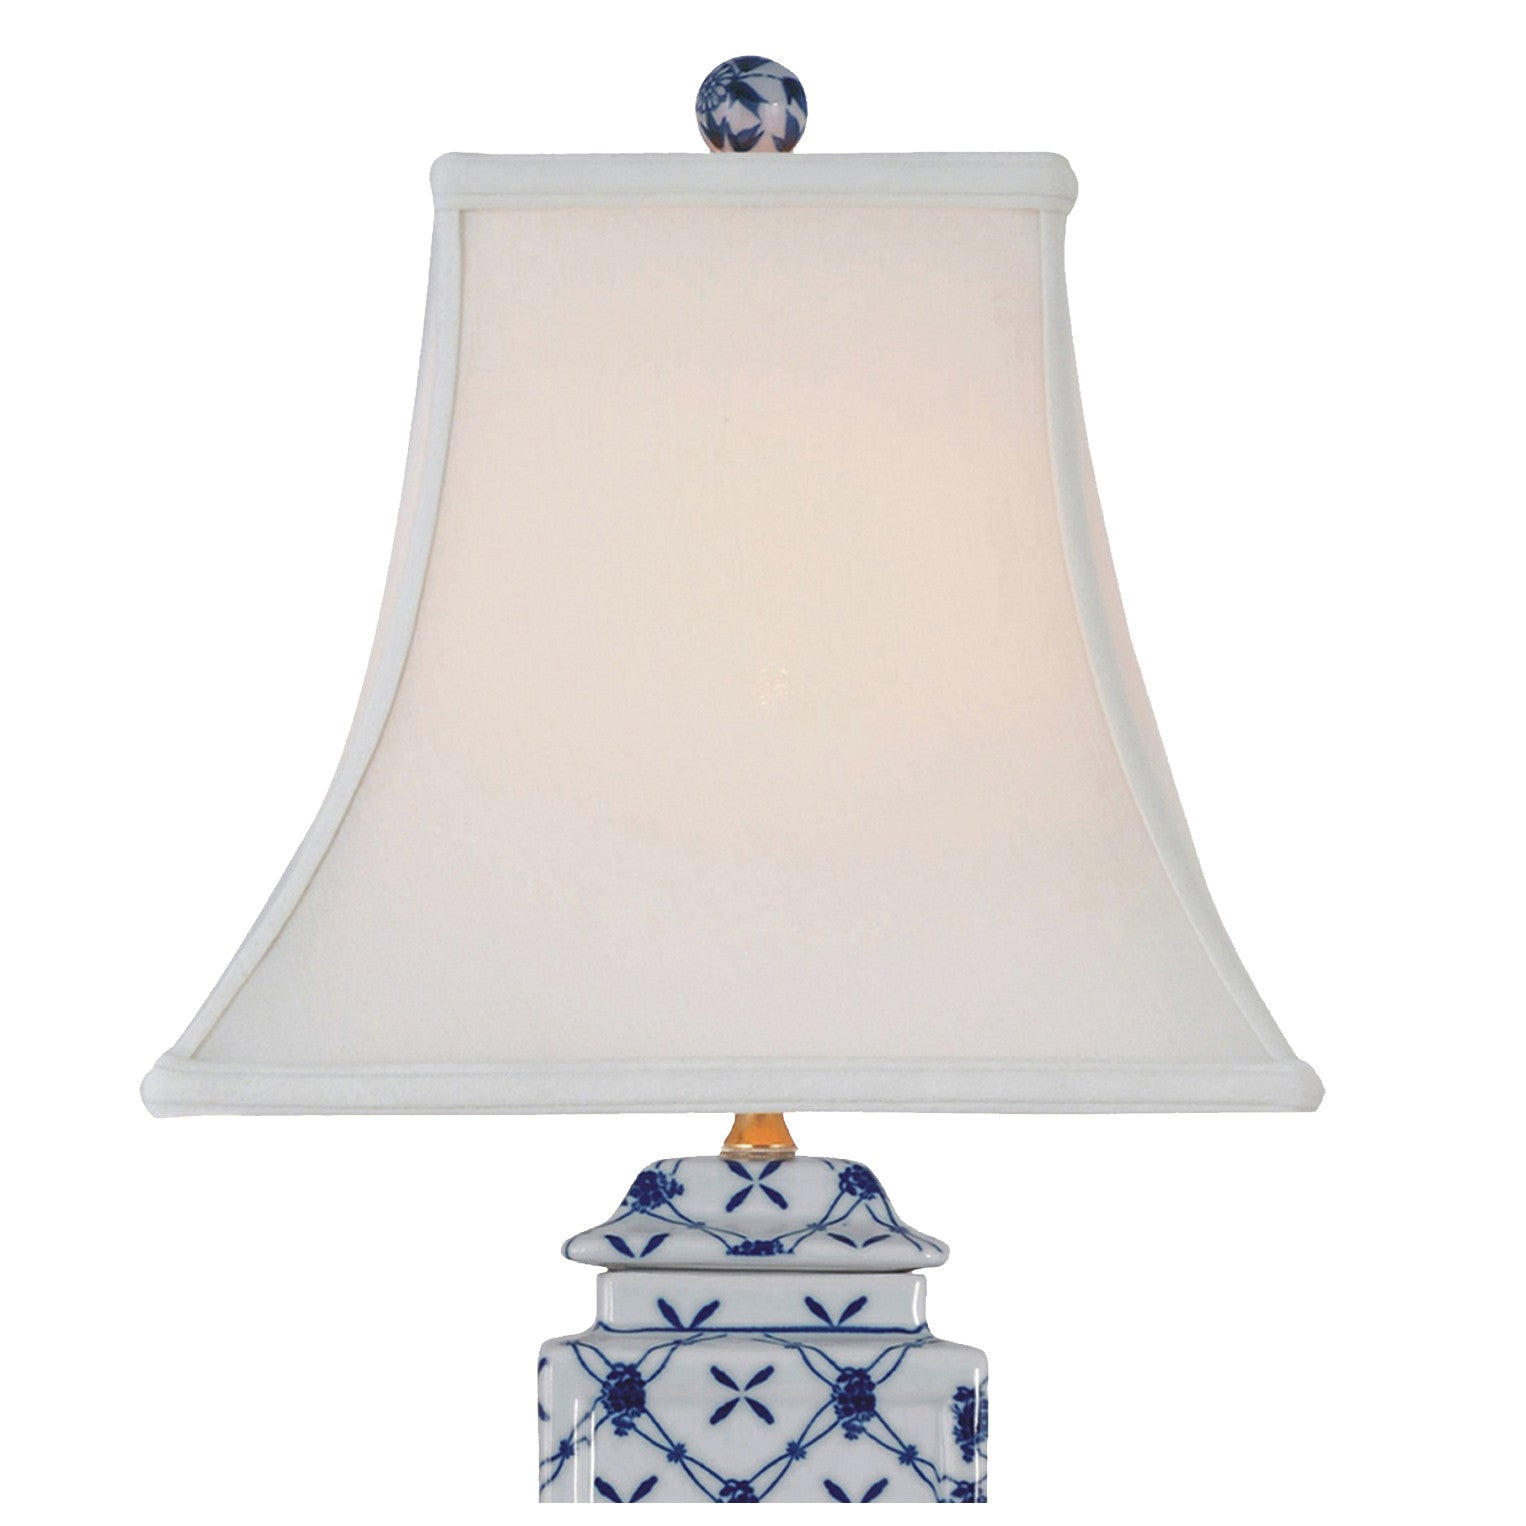 Square Cut Jar Porcelain Blue Table Lamp